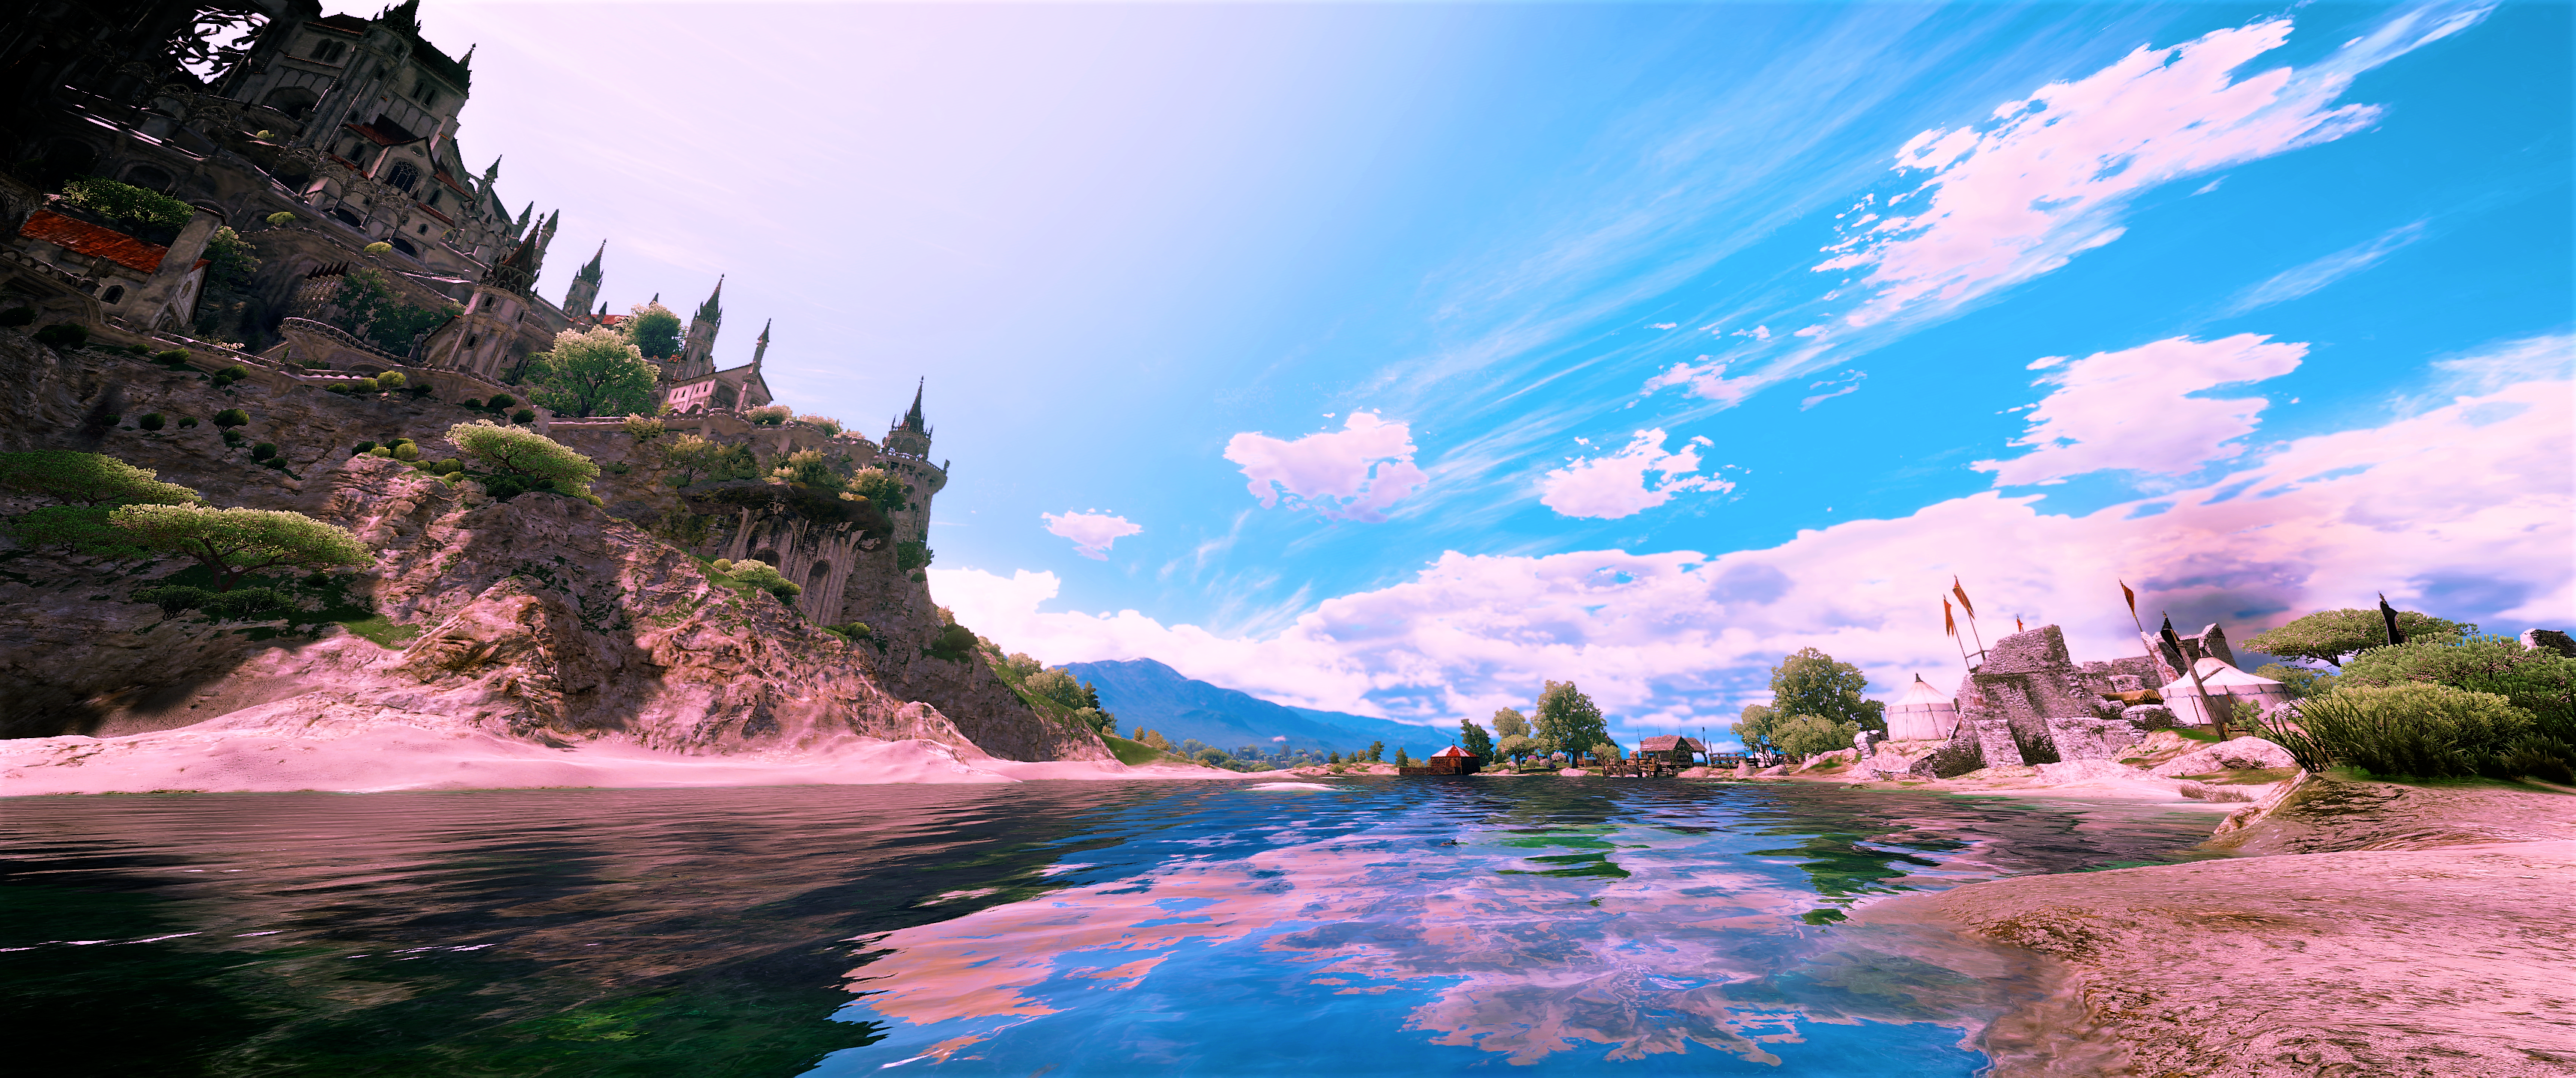 tossaint river hd wallpaper background image 3440x1440 id